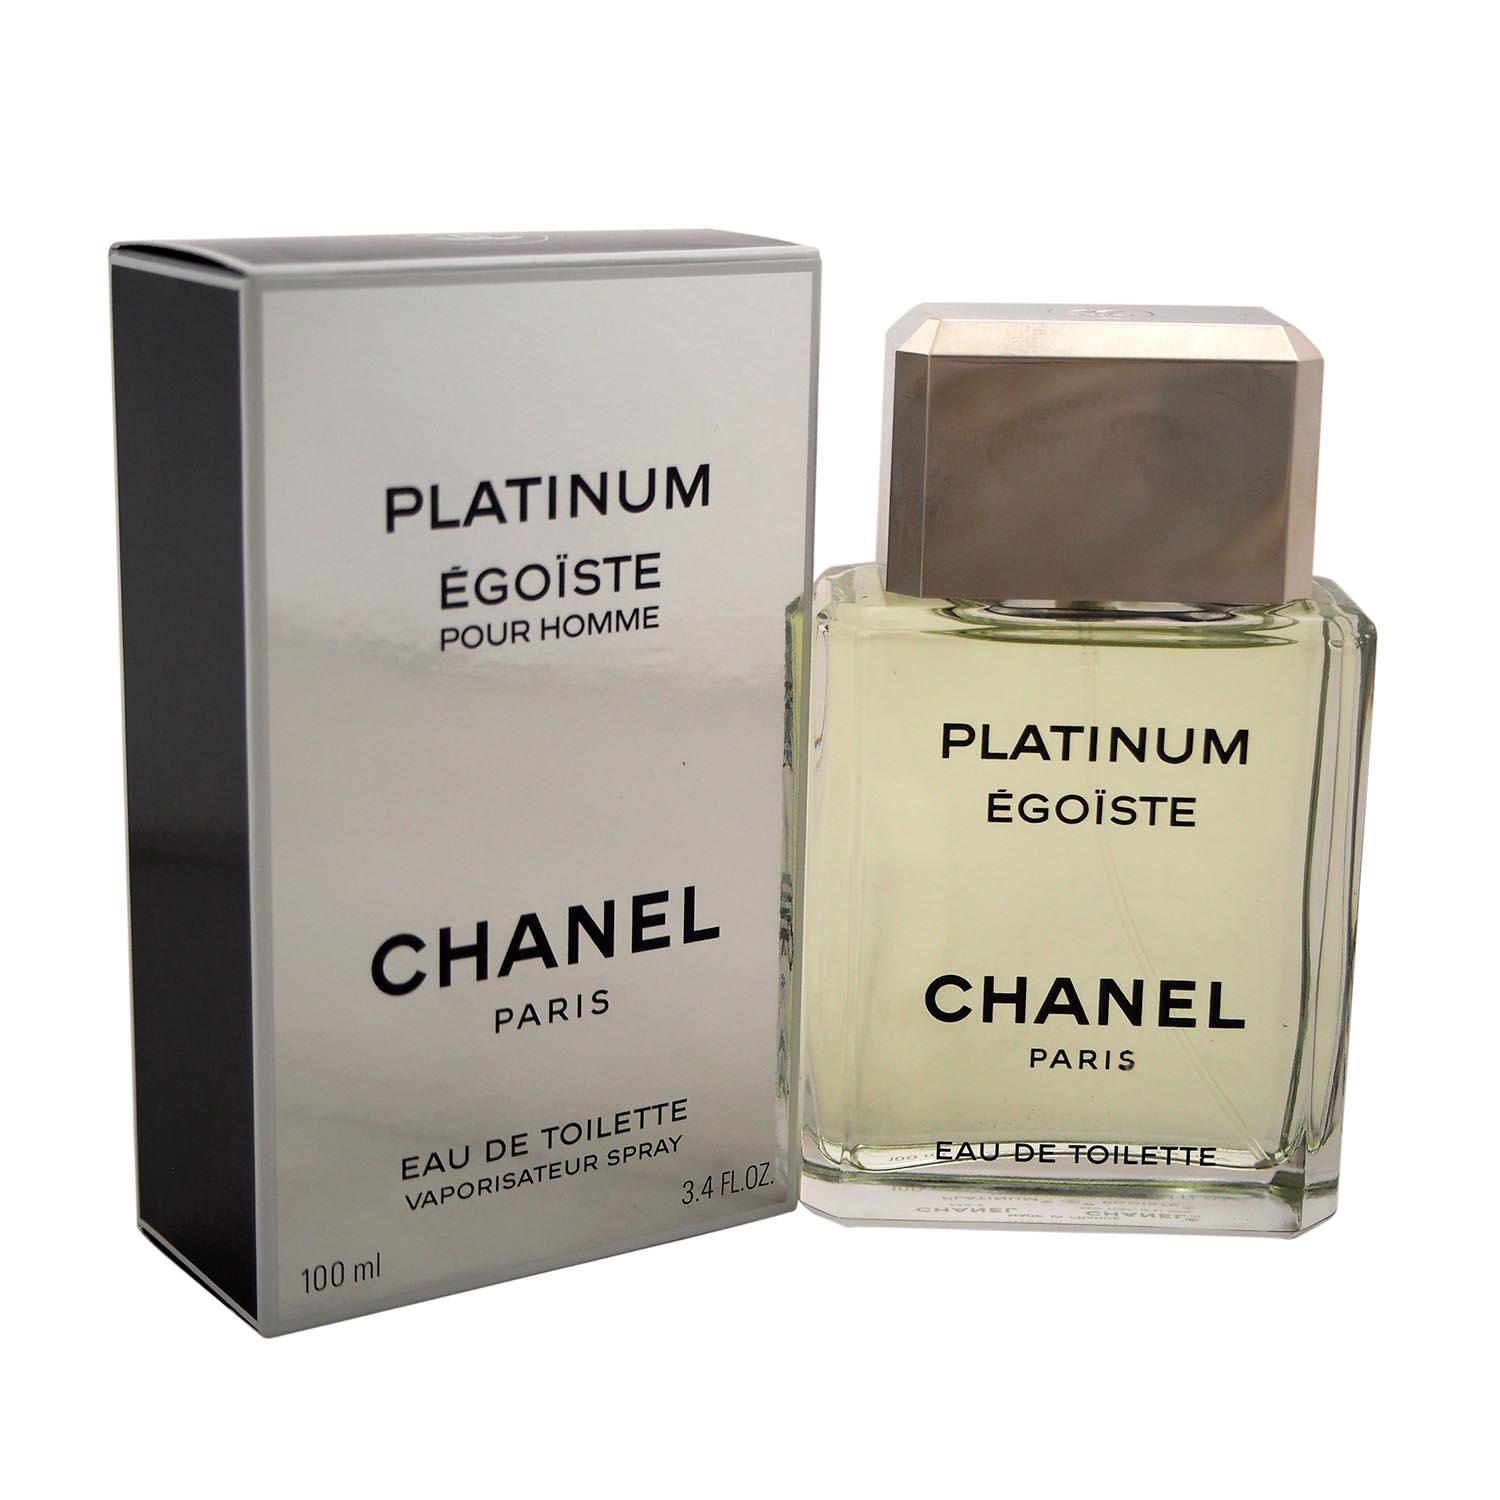 Chanel egoiste platinum eau de toilette 100ml